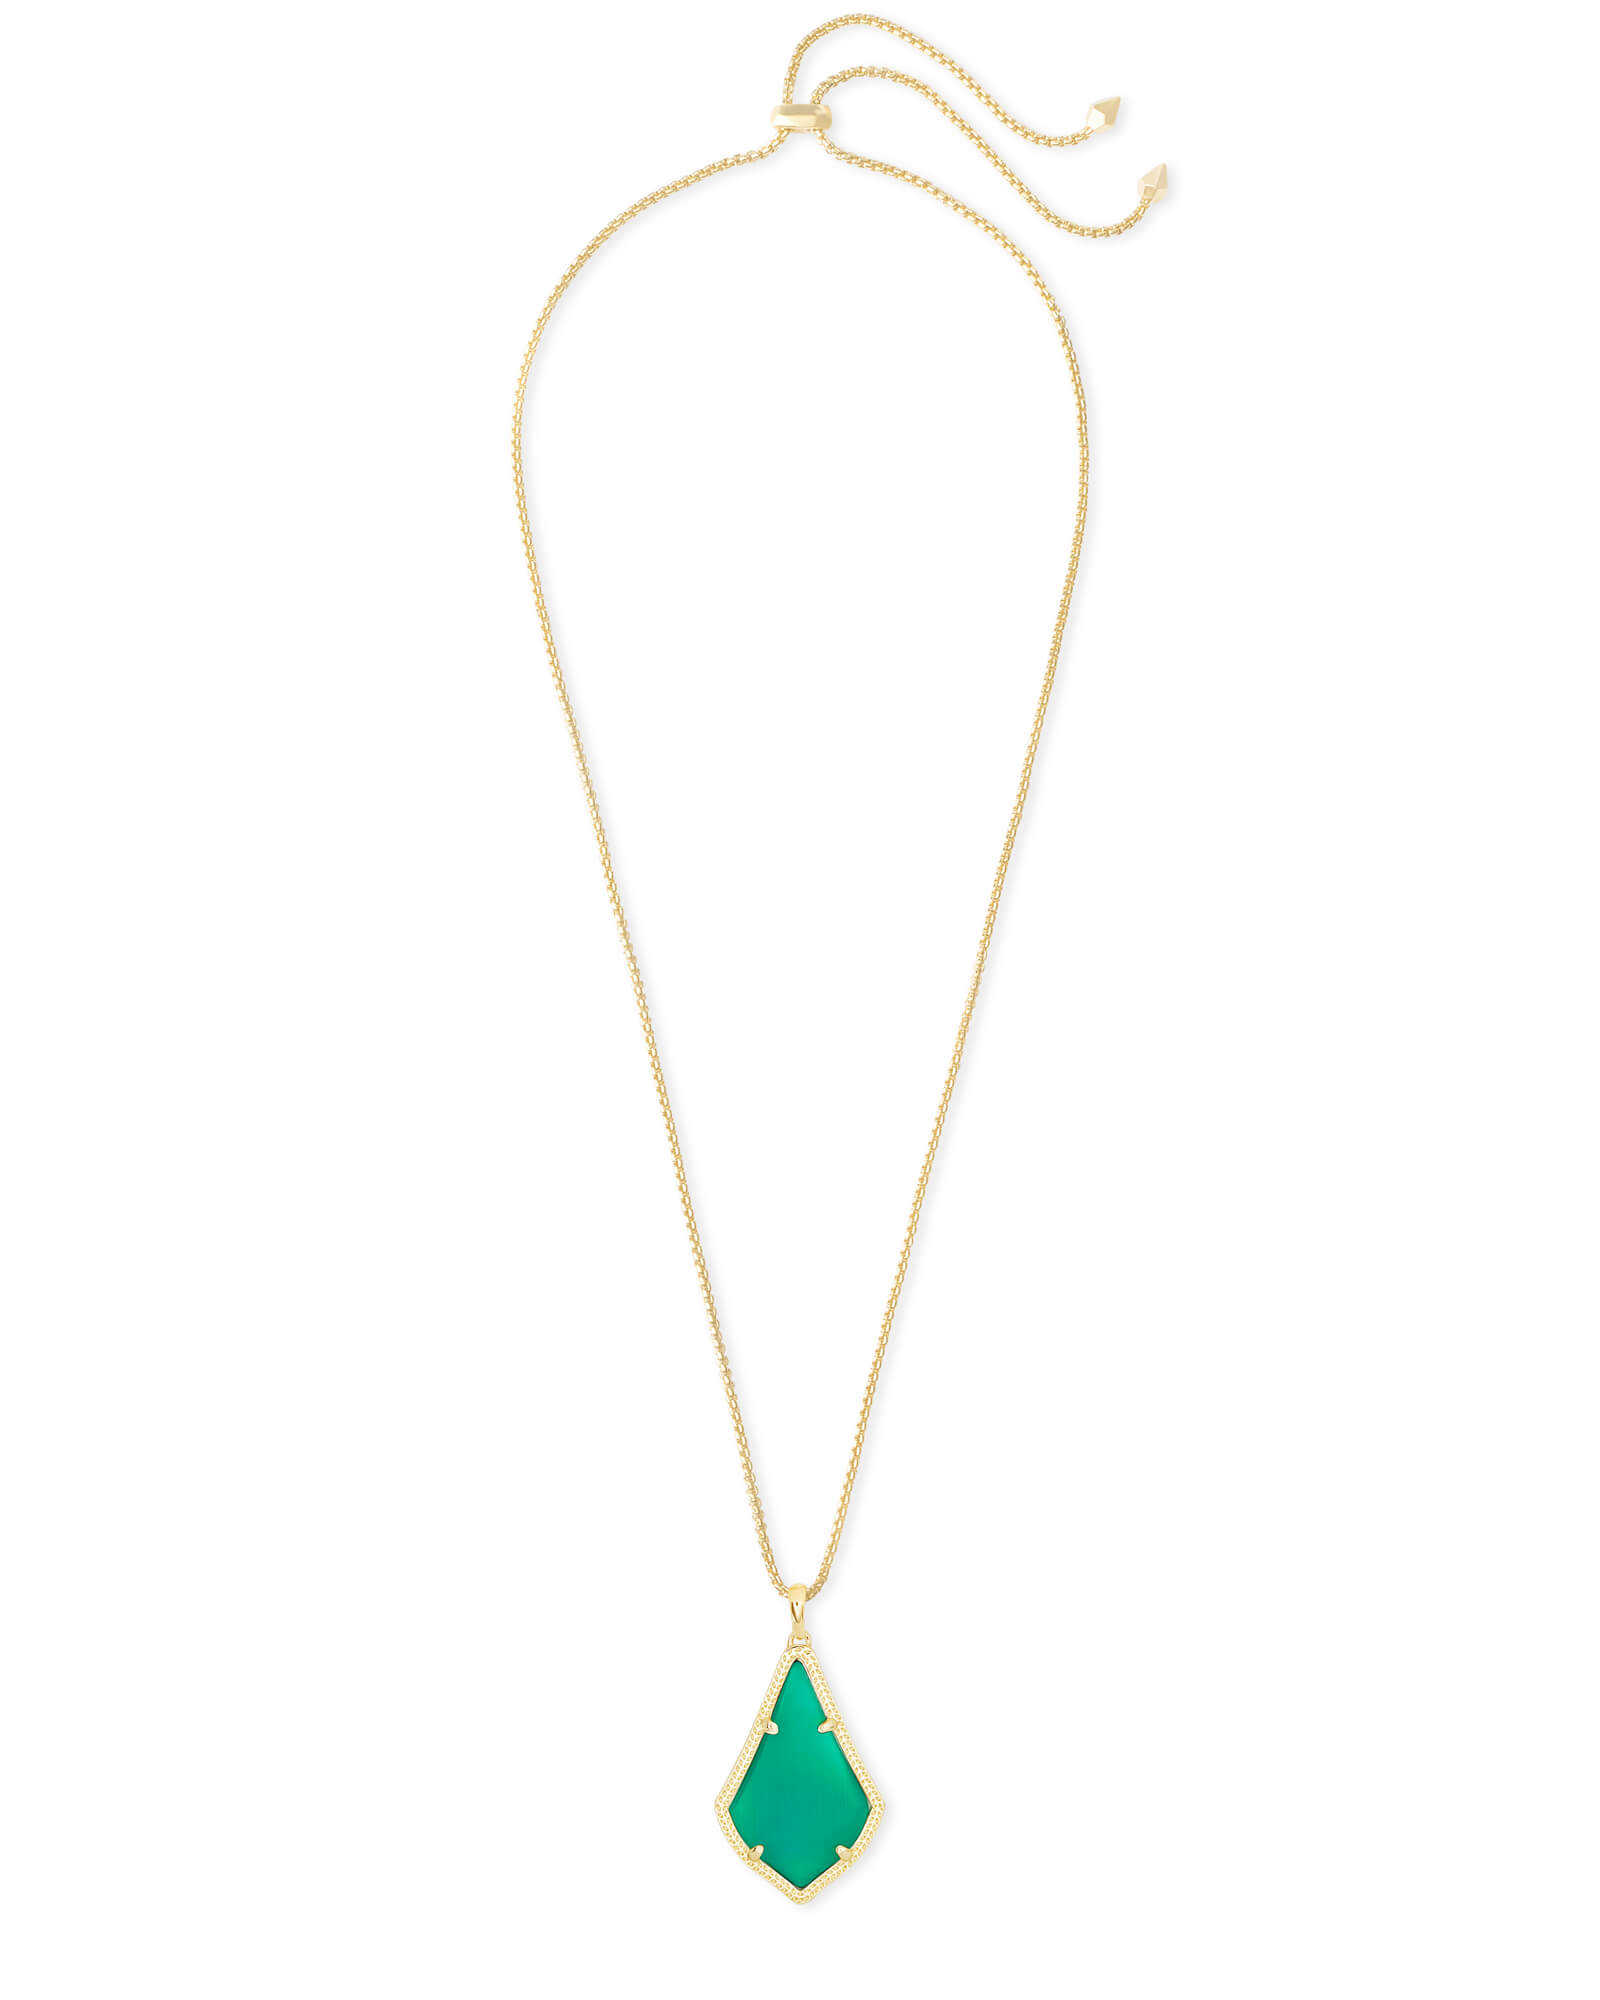 Alex Gold Pendant Necklace in Emerald Cat's Eye